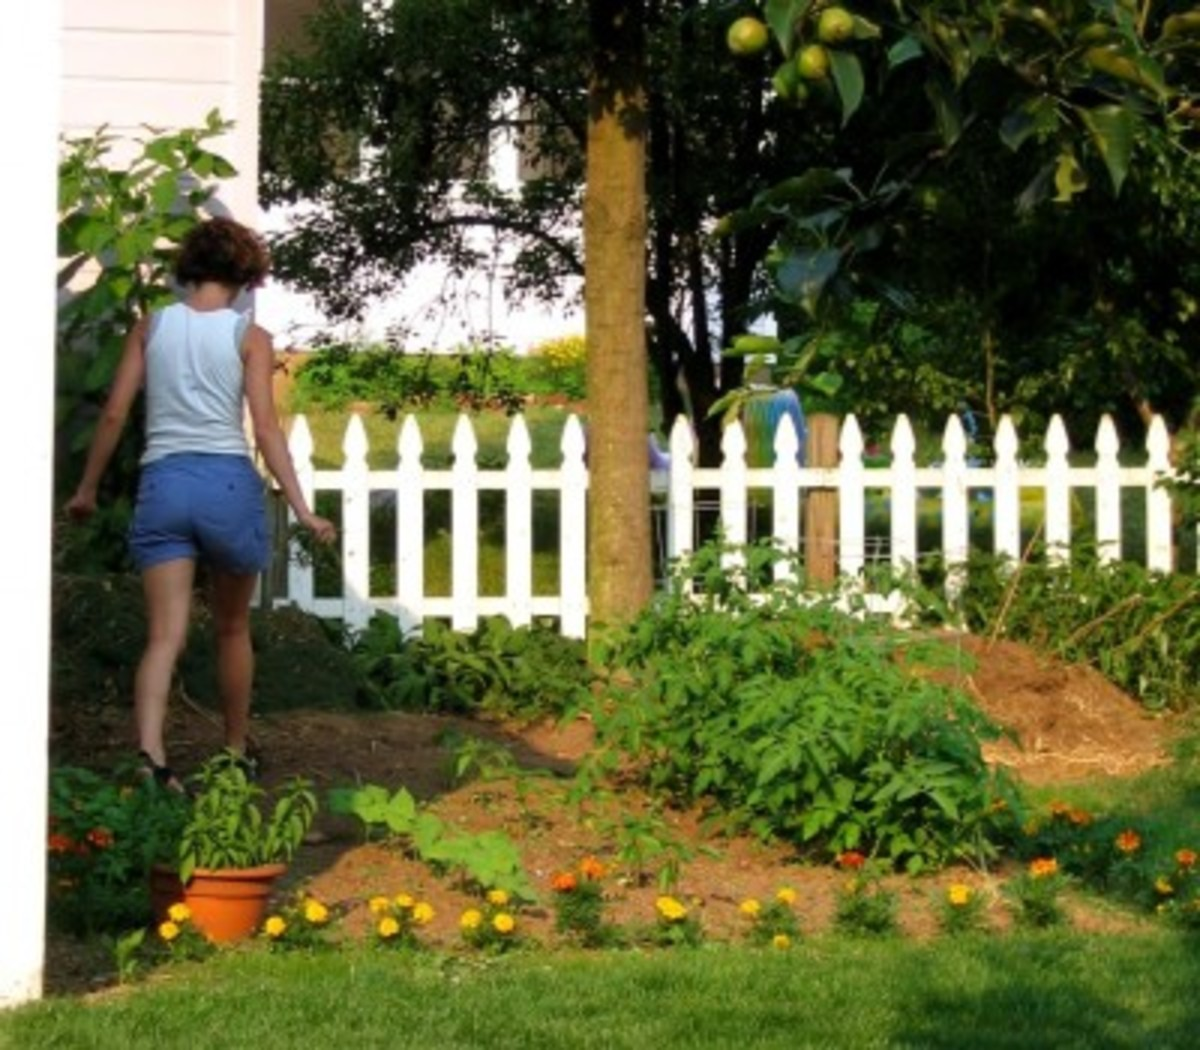 Our yard in Connecticut was only 0.12 acres, so my garden was, like, 0.012 acres. Space was precious.